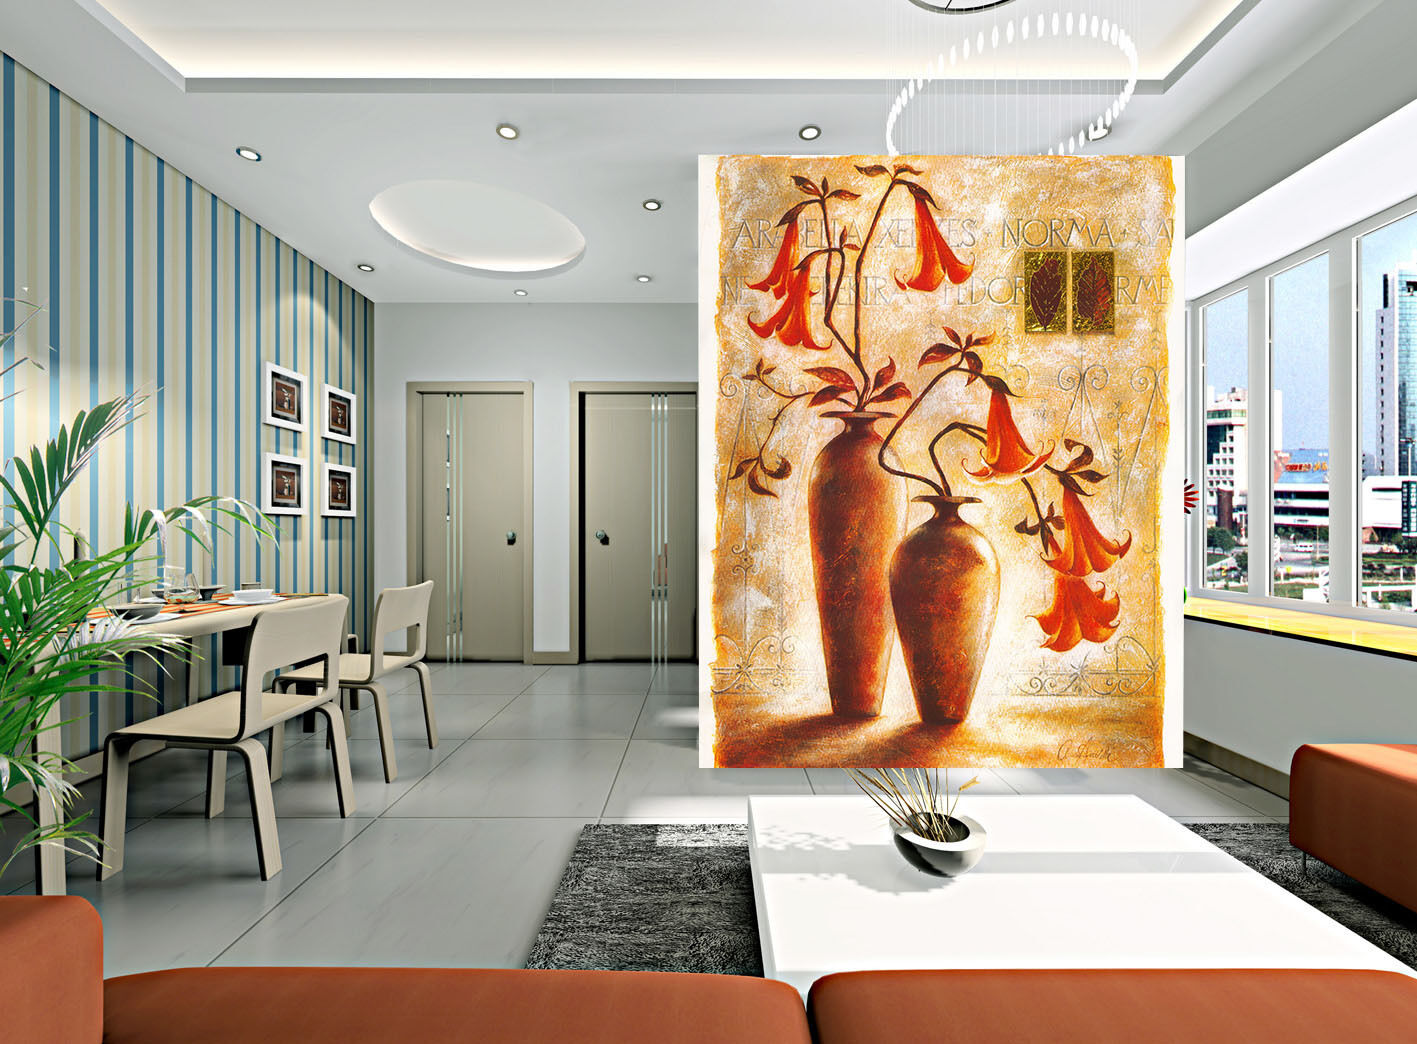 3D Arc Vase Flowers Painted Wall Paper Wall Print Decal Wall AJ WALLPAPER CA